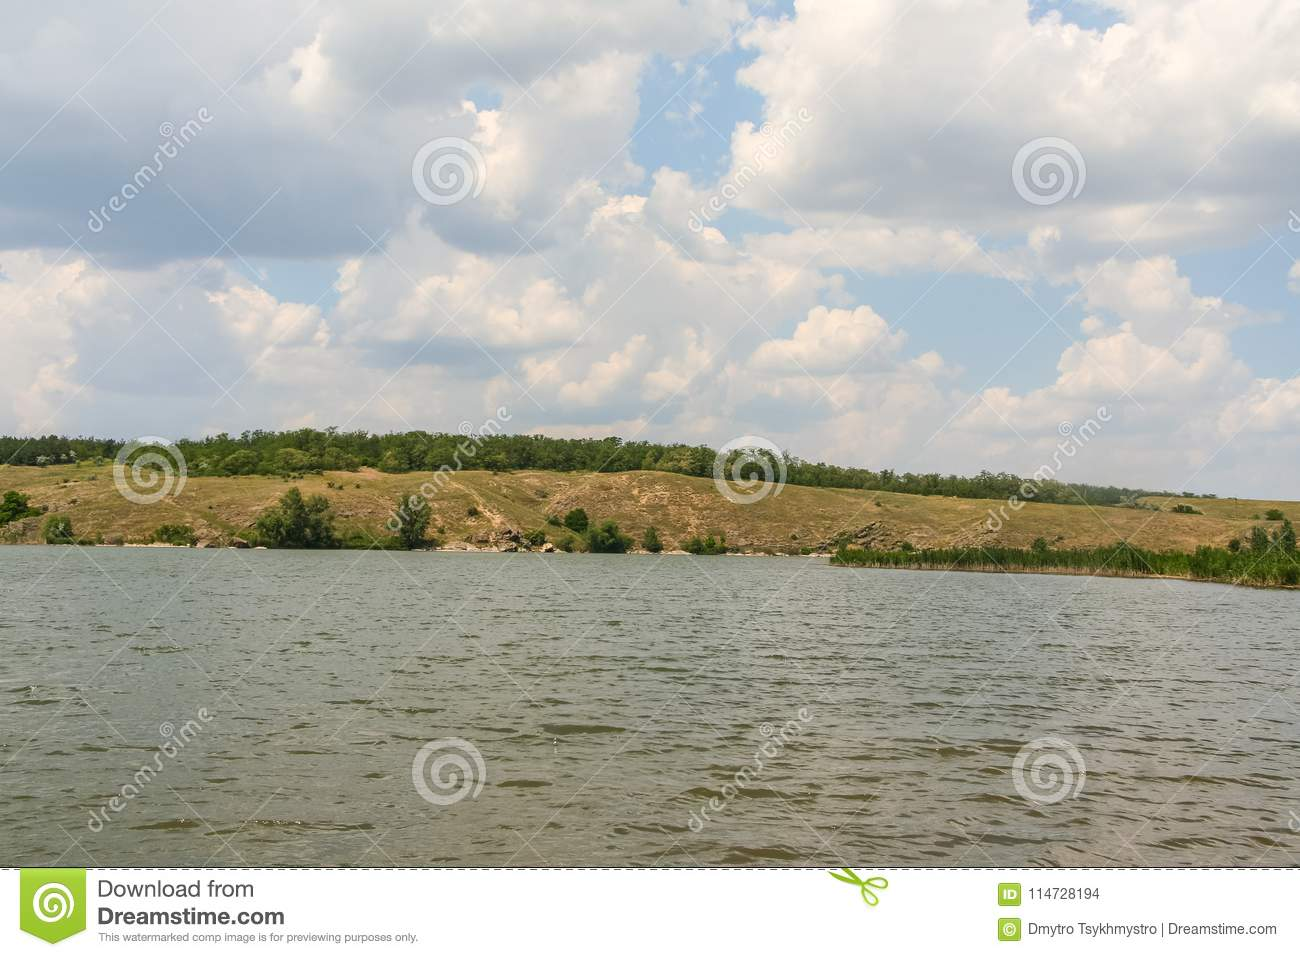 Man-made Pond In An Old Stone Quarry Stock Photo - Image of